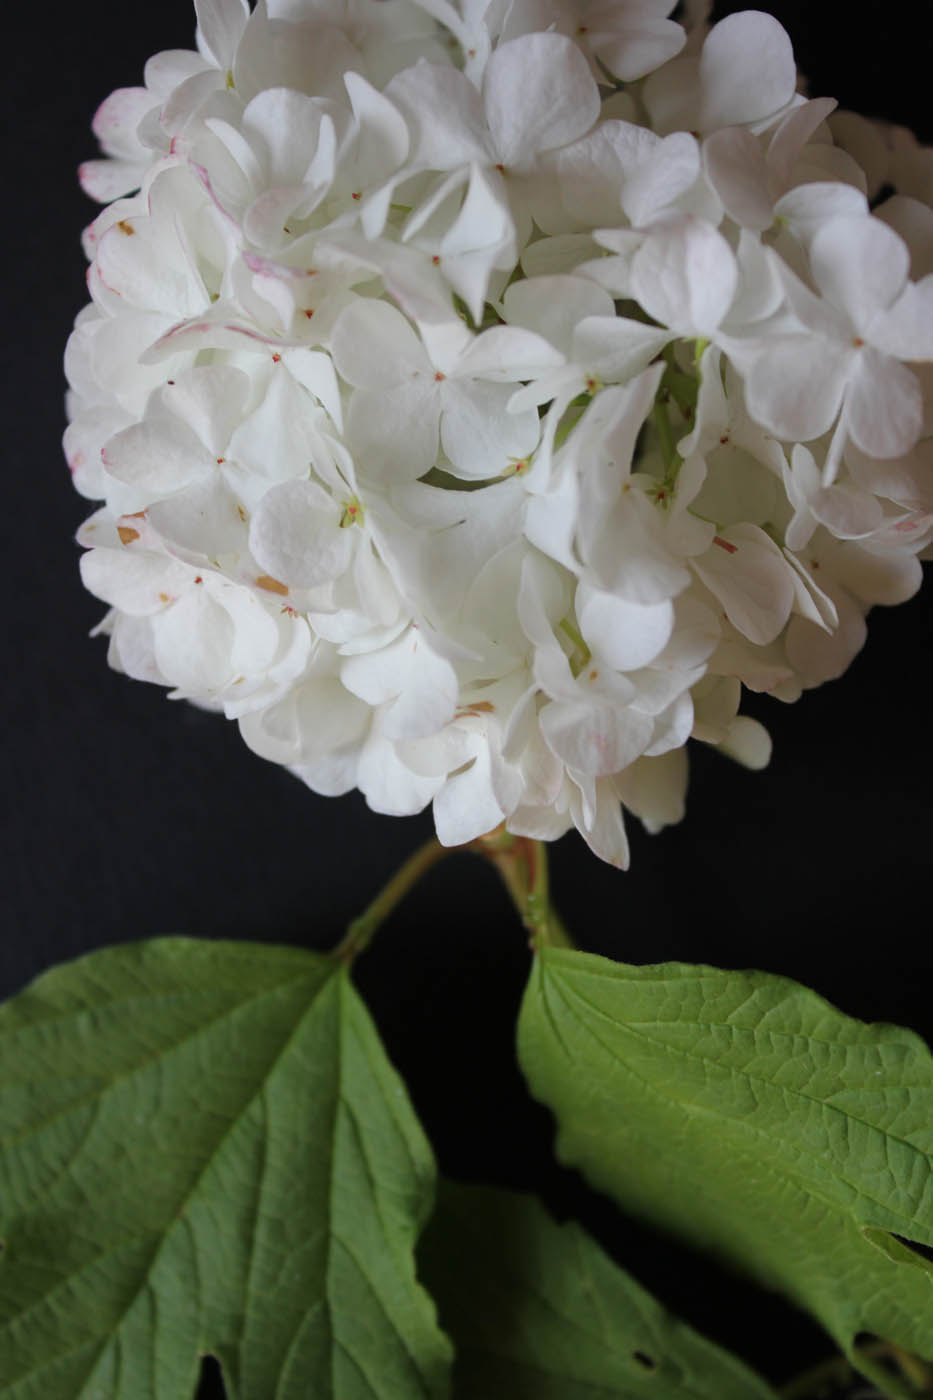 Viburnum Photo1 2 Juin 2015 16h20